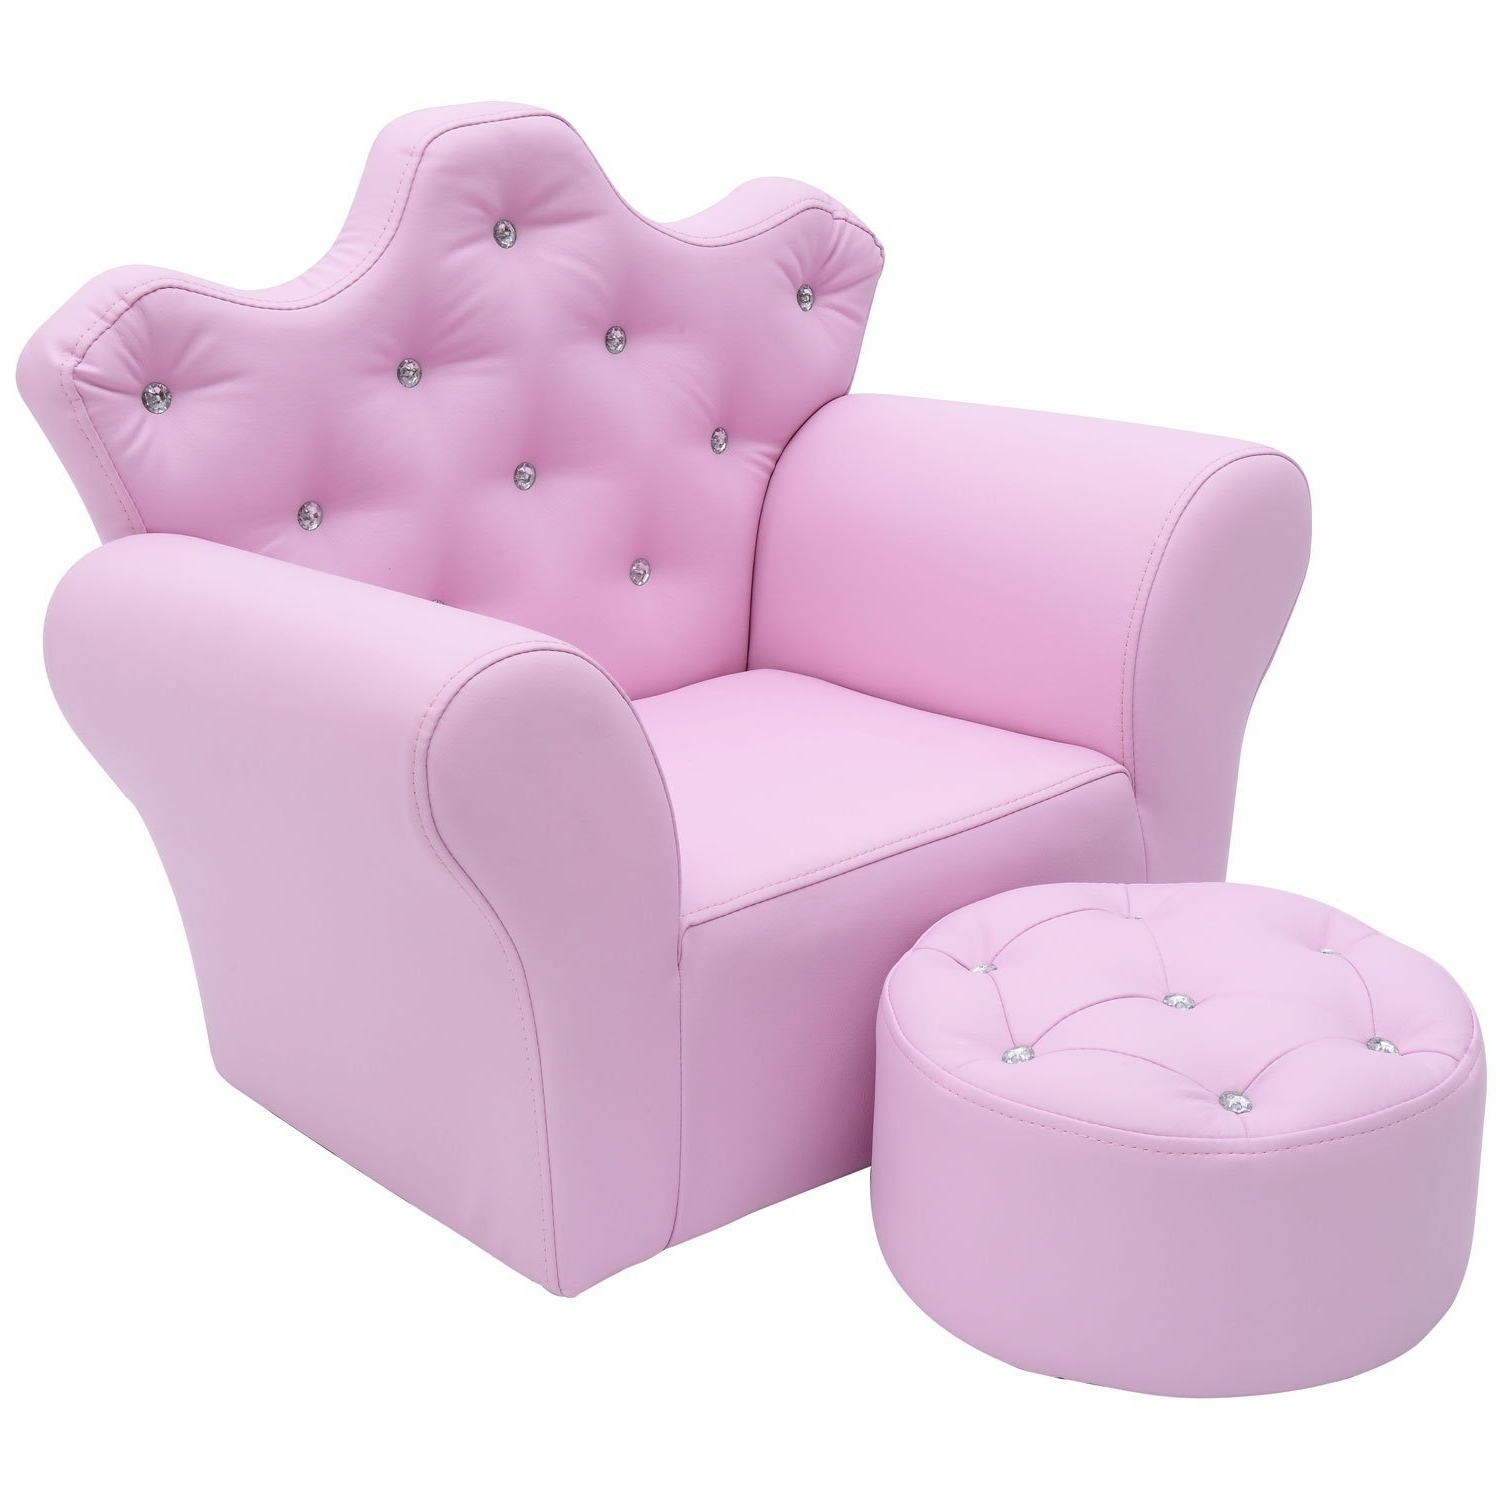 Armchair : Kids Lounge Chair Recliner For 12 Year Old Upholstered With Regard To Fashionable Personalized Kids Chairs And Sofas (Gallery 12 of 20)